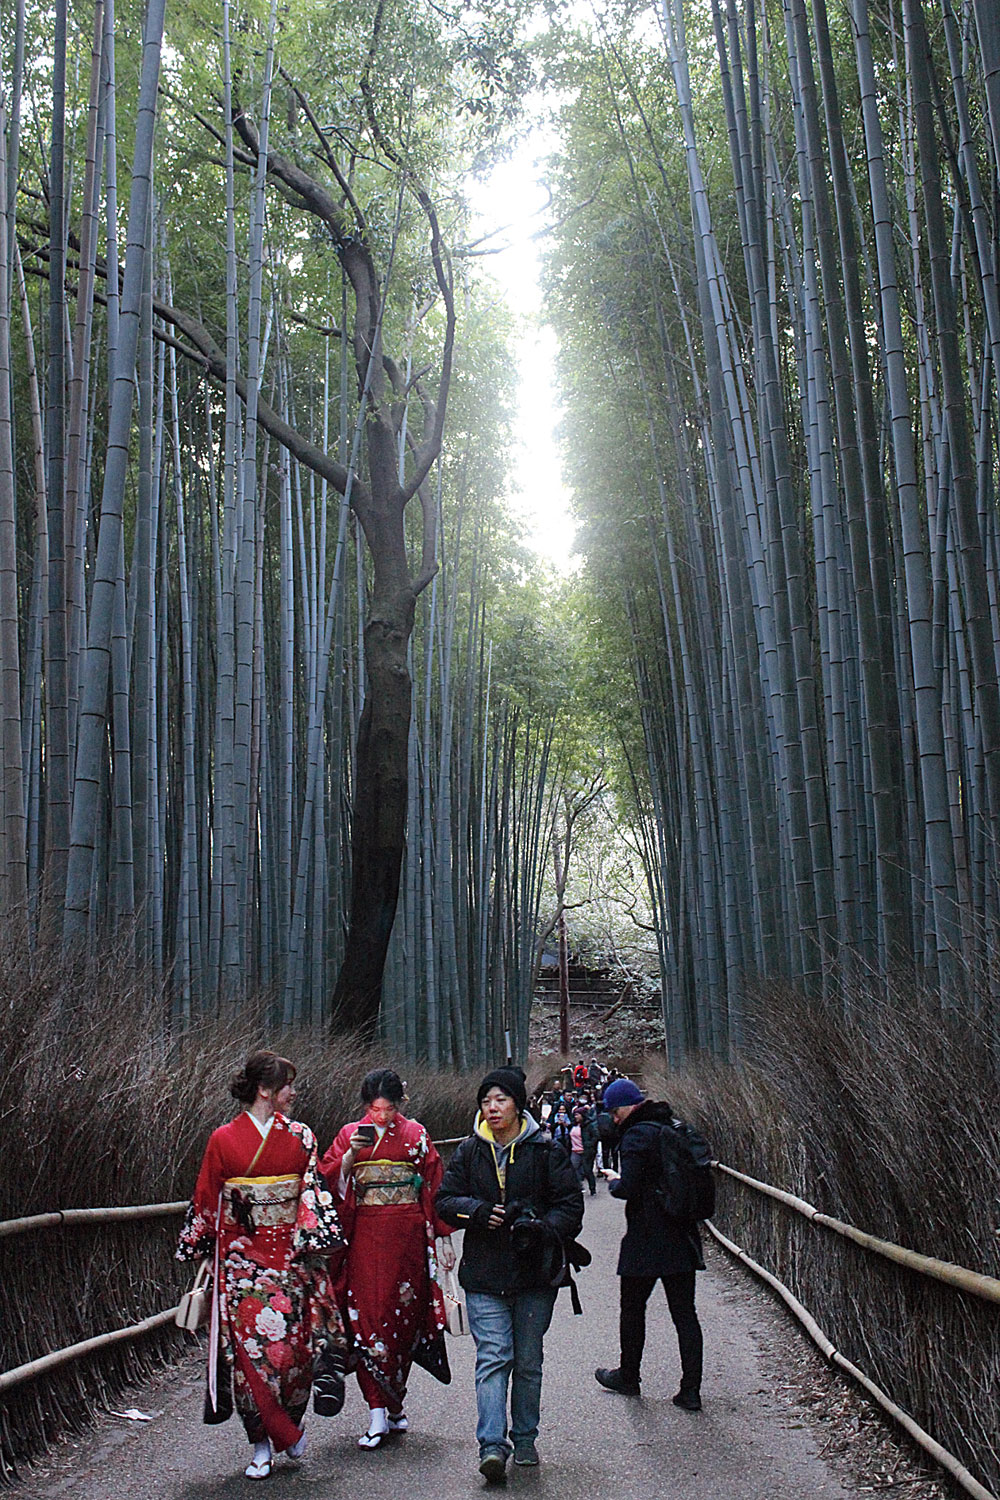 Sagano Bamboo Grove in Arashiyama district of Kyoto